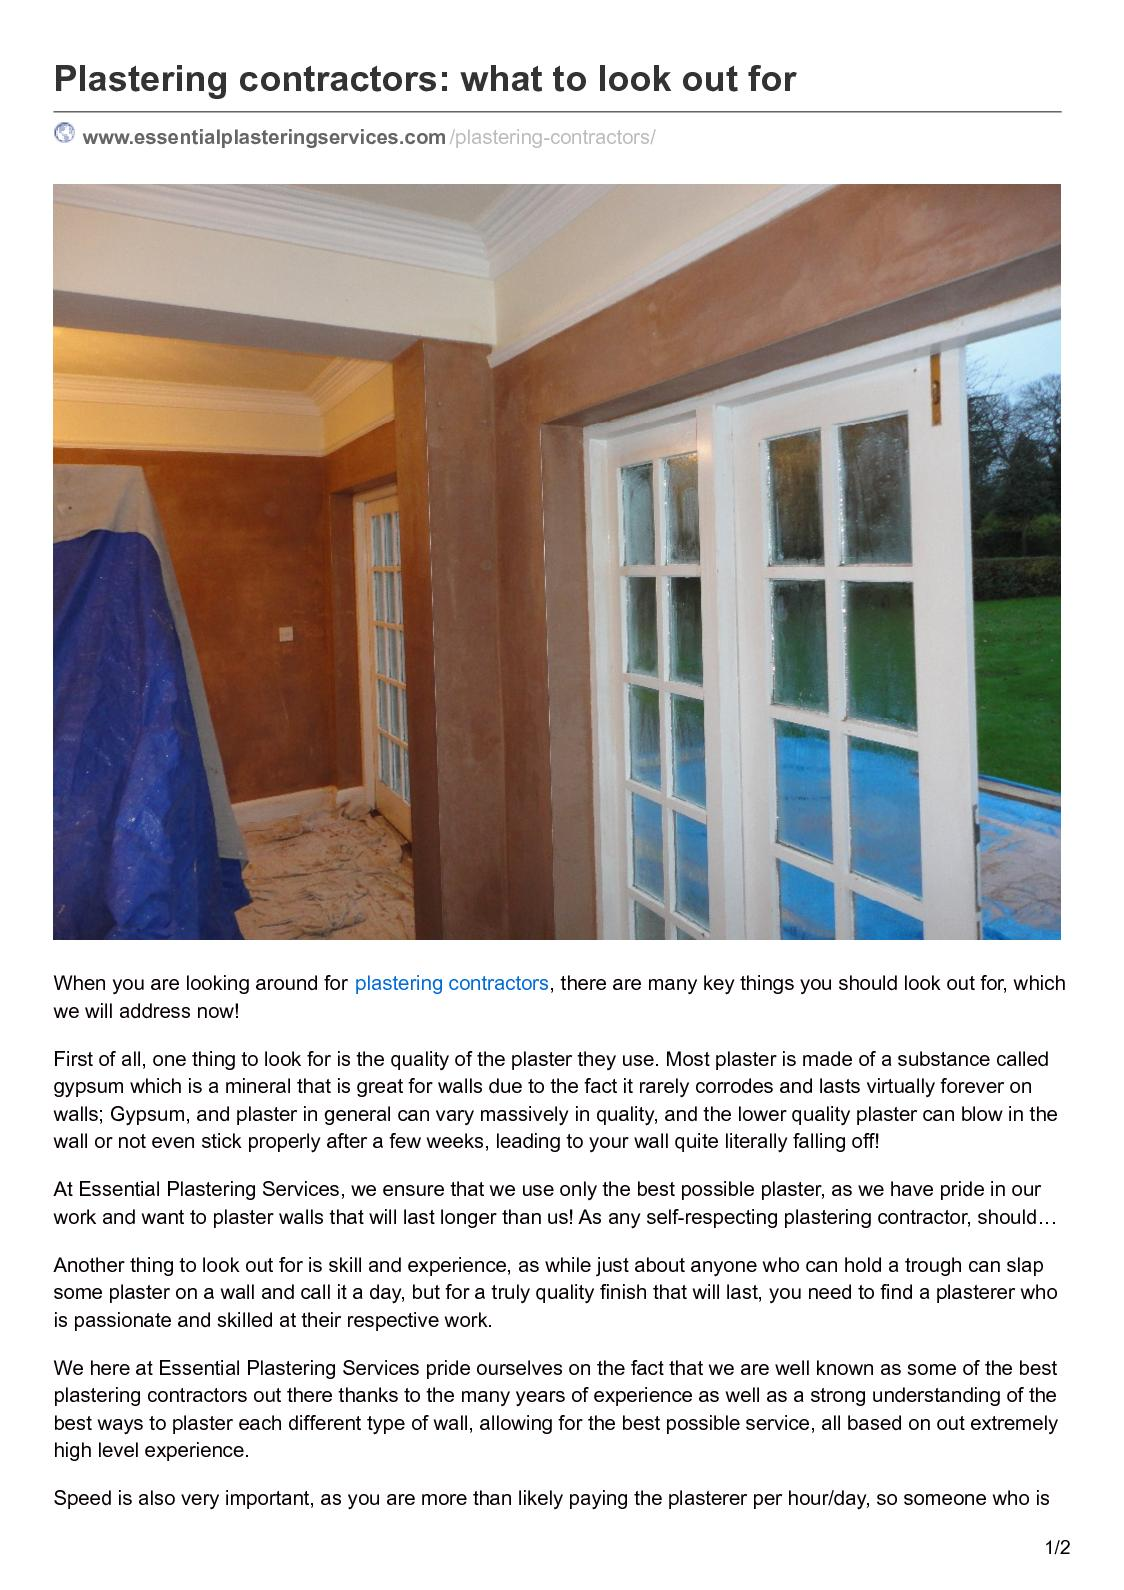 Calaméo - Plastering Contractors What To Look Out For